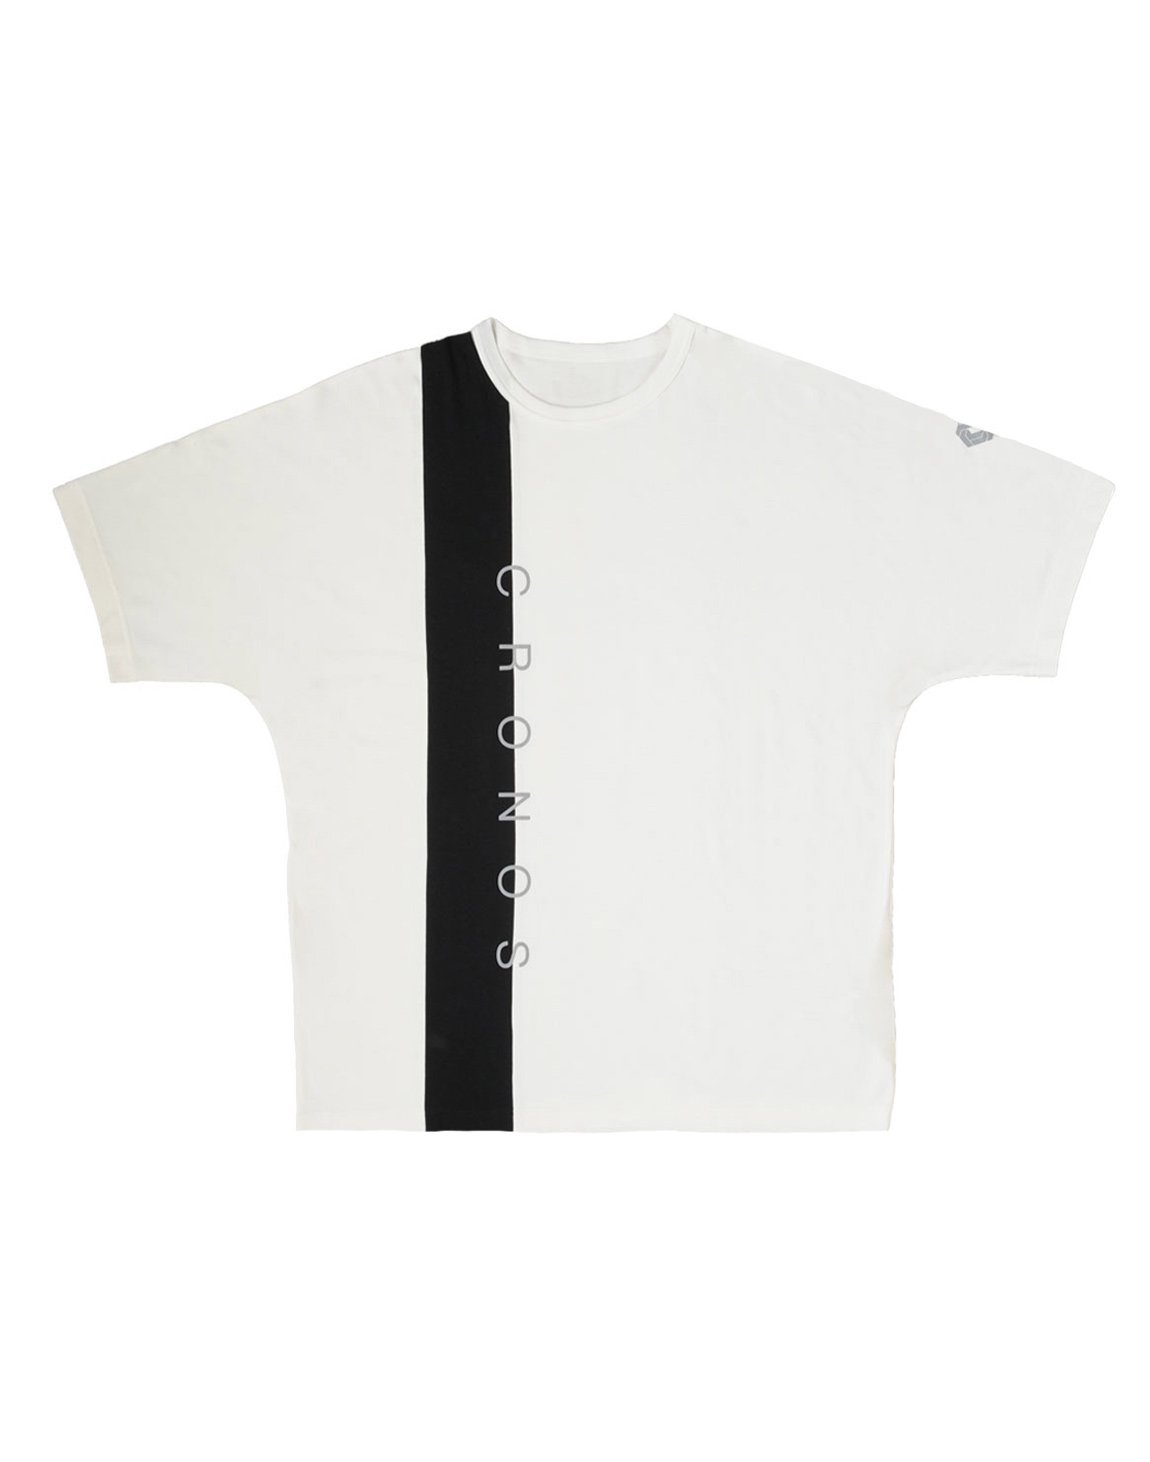 <img class='new_mark_img1' src='https://img.shop-pro.jp/img/new/icons1.gif' style='border:none;display:inline;margin:0px;padding:0px;width:auto;' />CRONOS VERTICAL LINE OVER SIZE T-SHIRTS【WHITE】